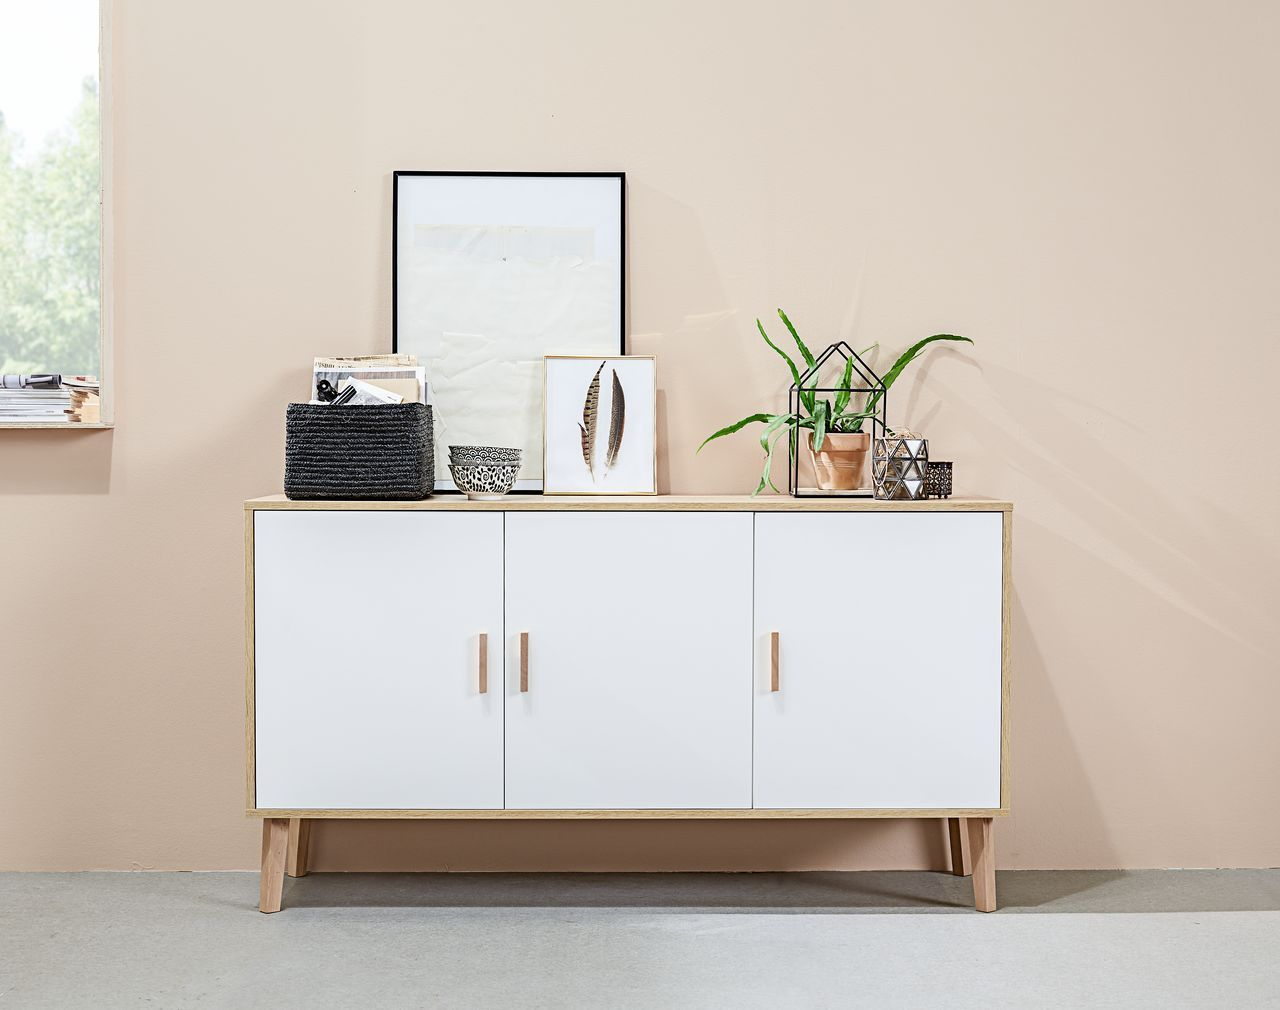 Sideboard Real Scandic Style Sideboard Minimal White Furniture With Oak Legs For